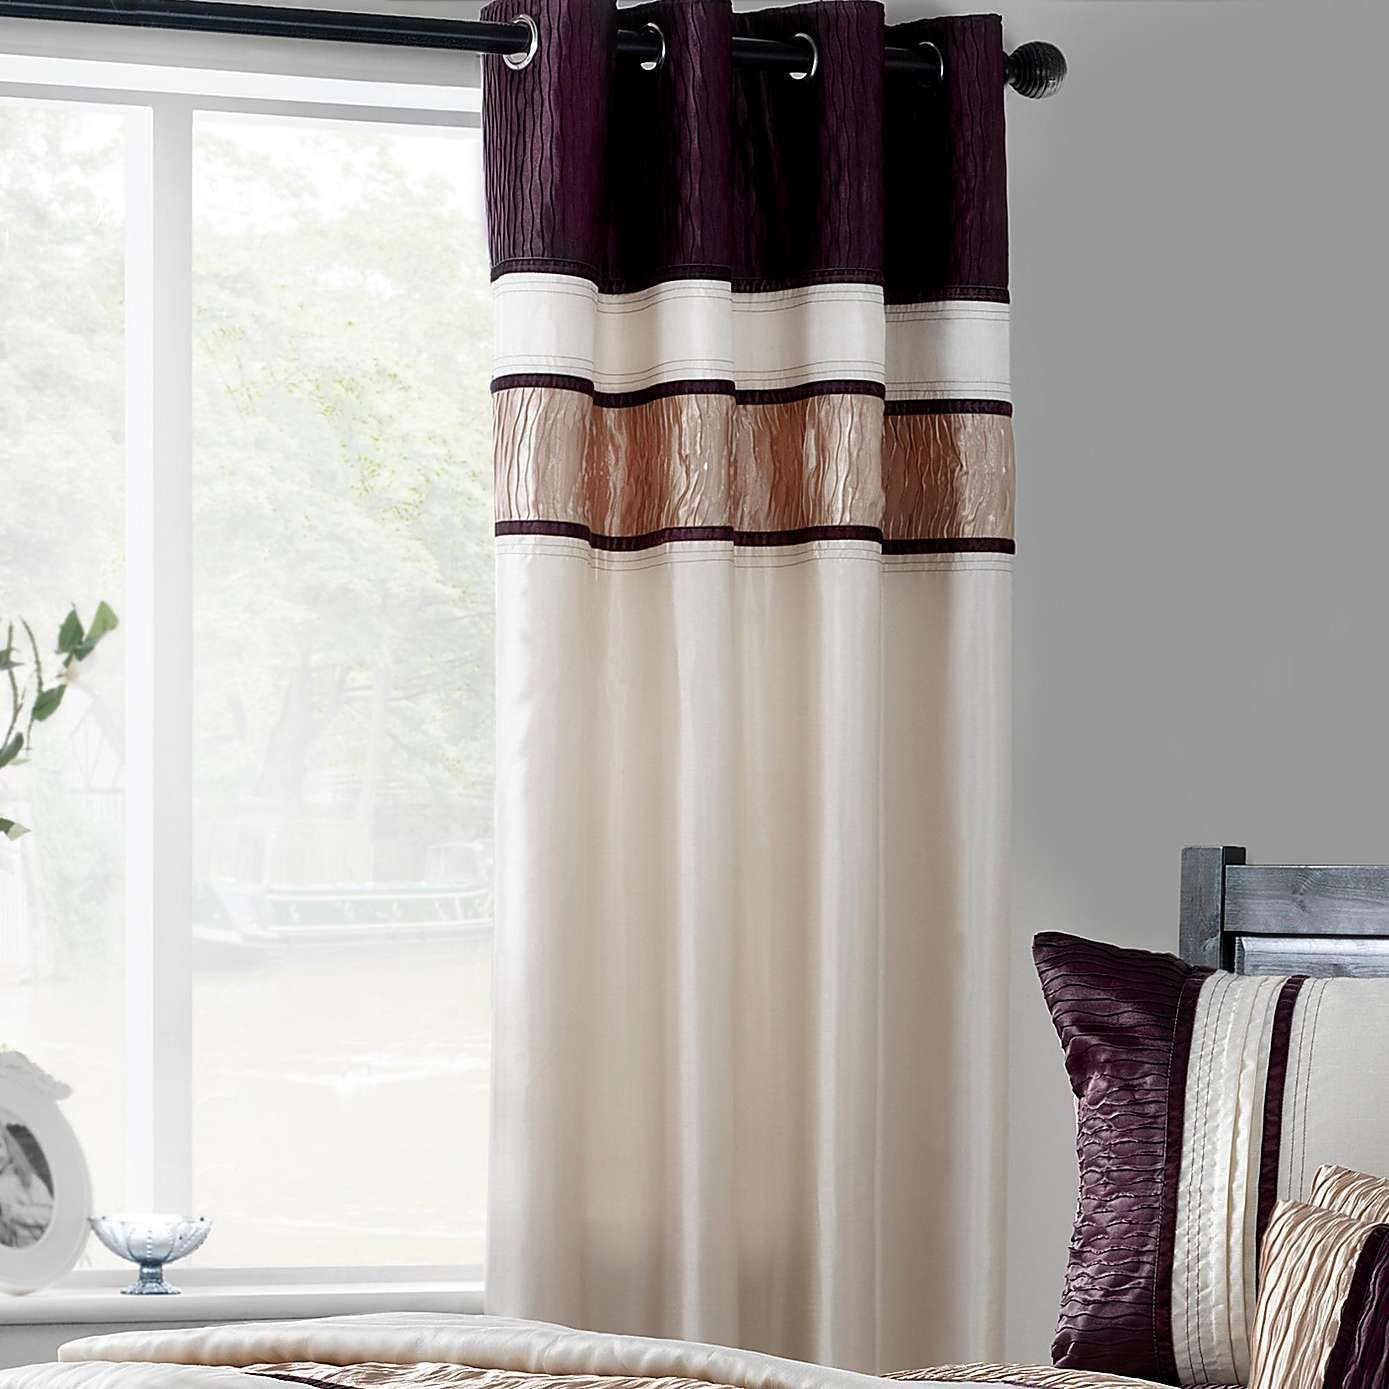 Plum Curtains for Bedroom Awesome Plum Manhattan Lined Eyelet Curtains Dunelm